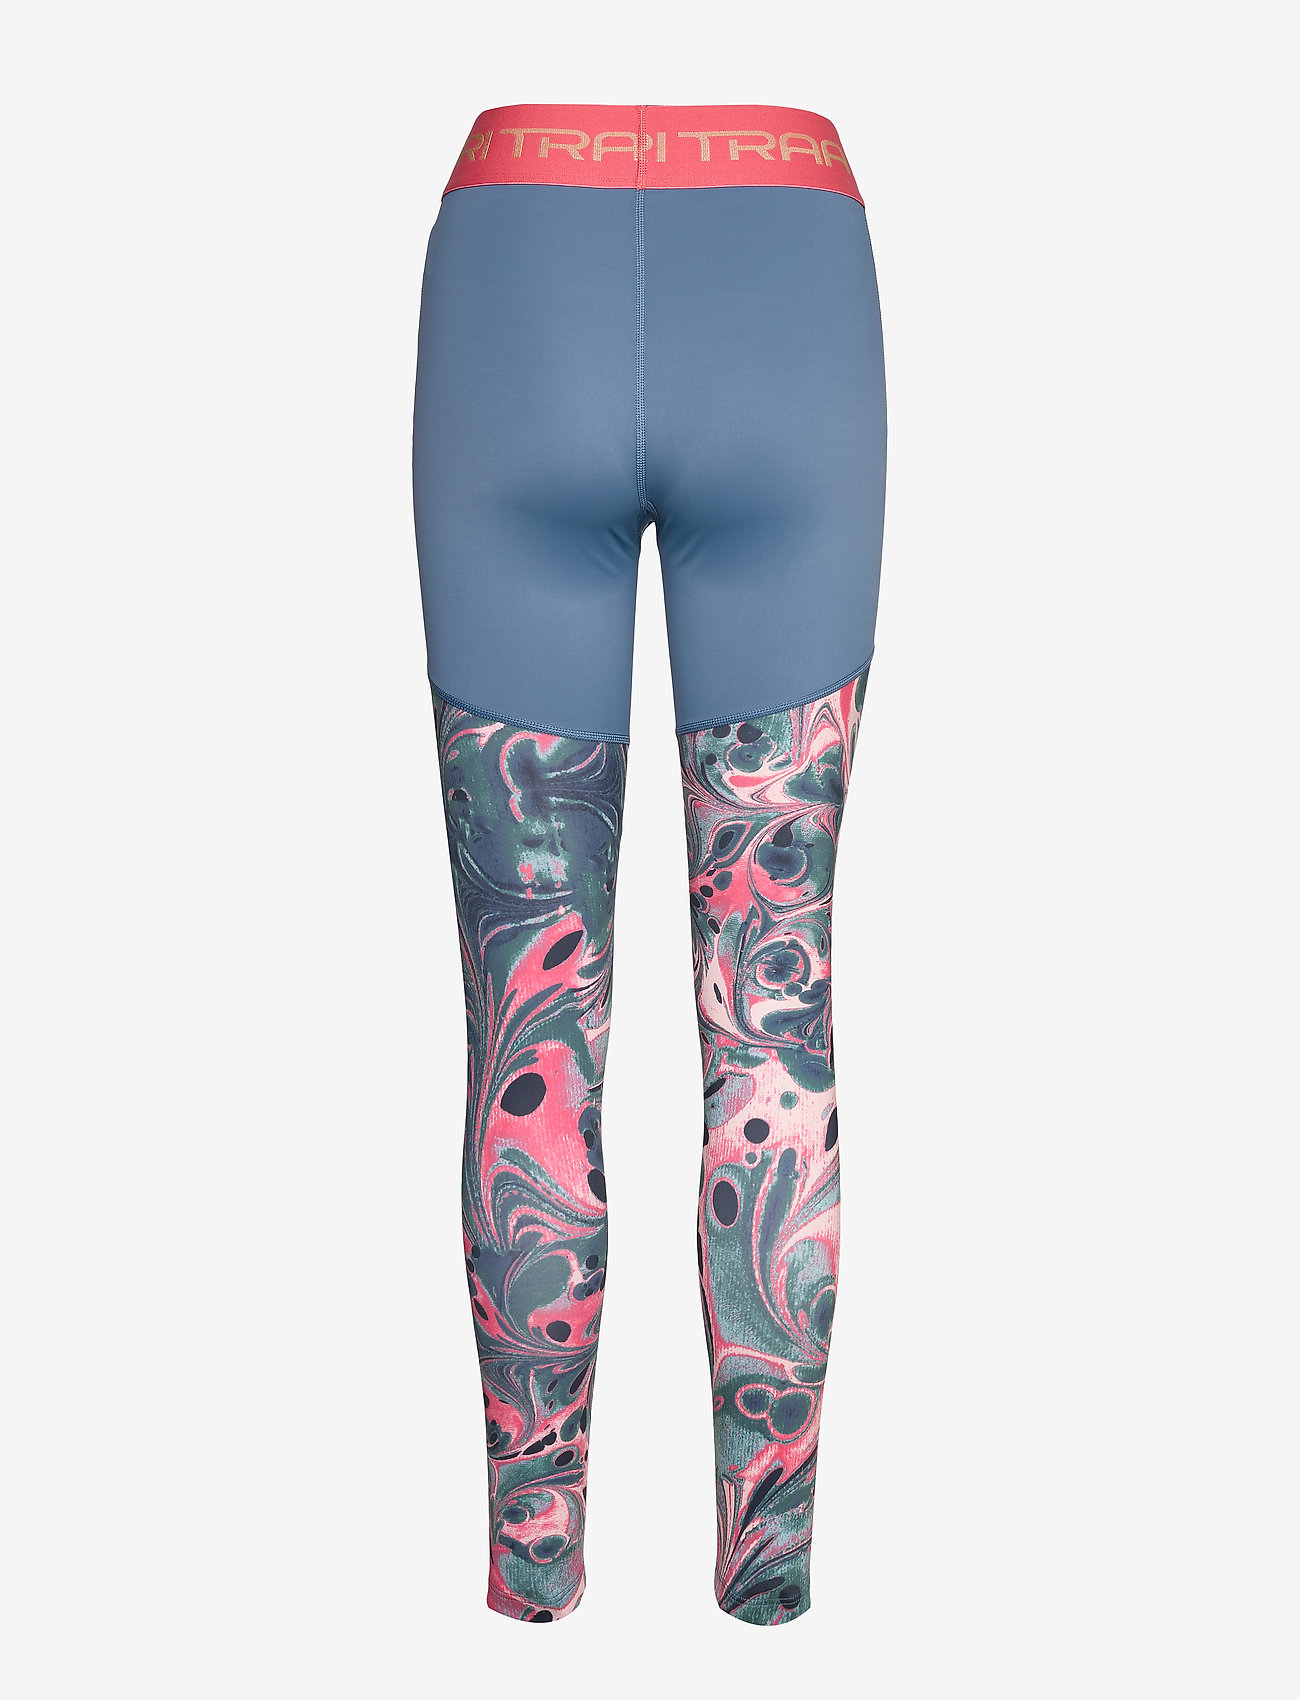 Kari Traa BEATRICE TIGHTS - Leggings & tights SURF - Dameklær Spesialtilbud